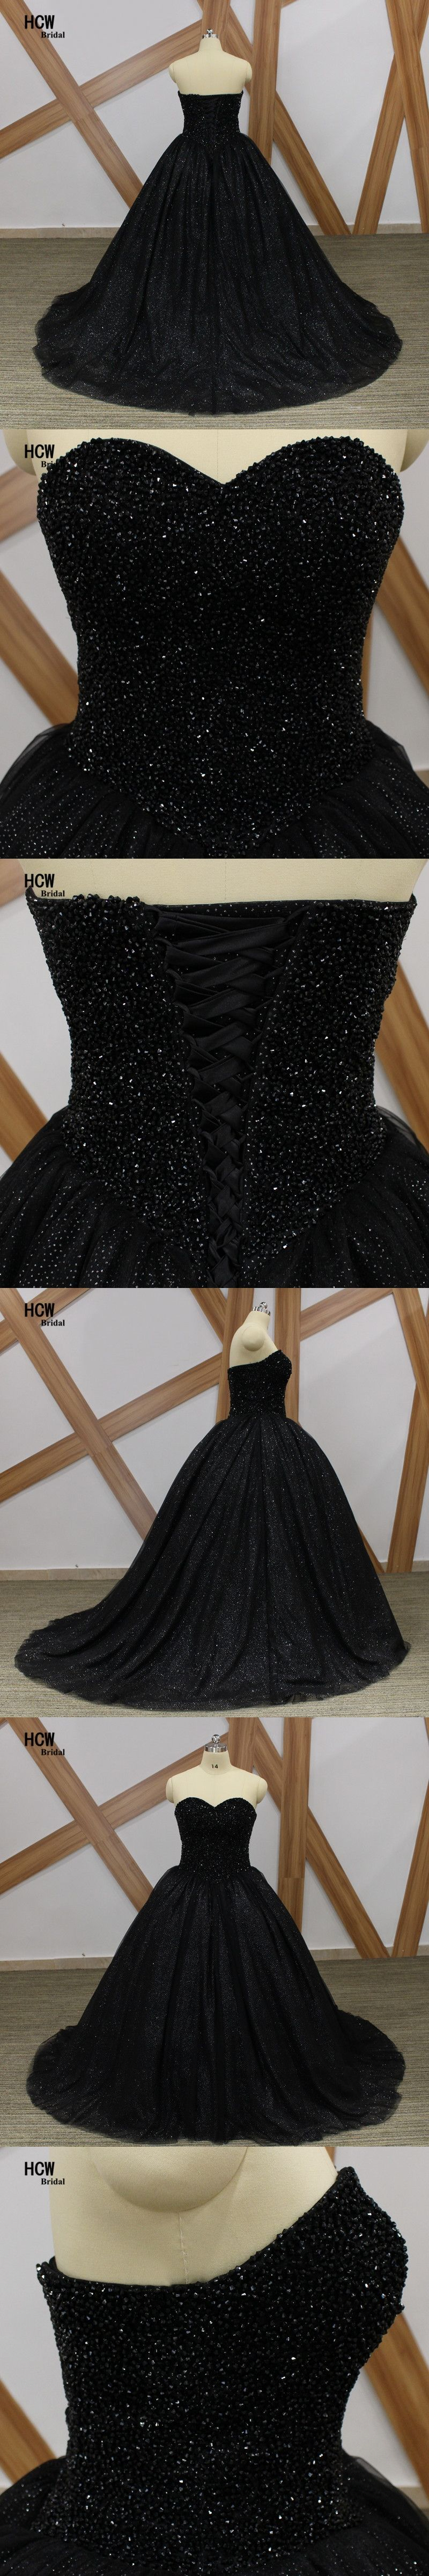 Bling black ball gown prom dresses strapless lace up back luxury